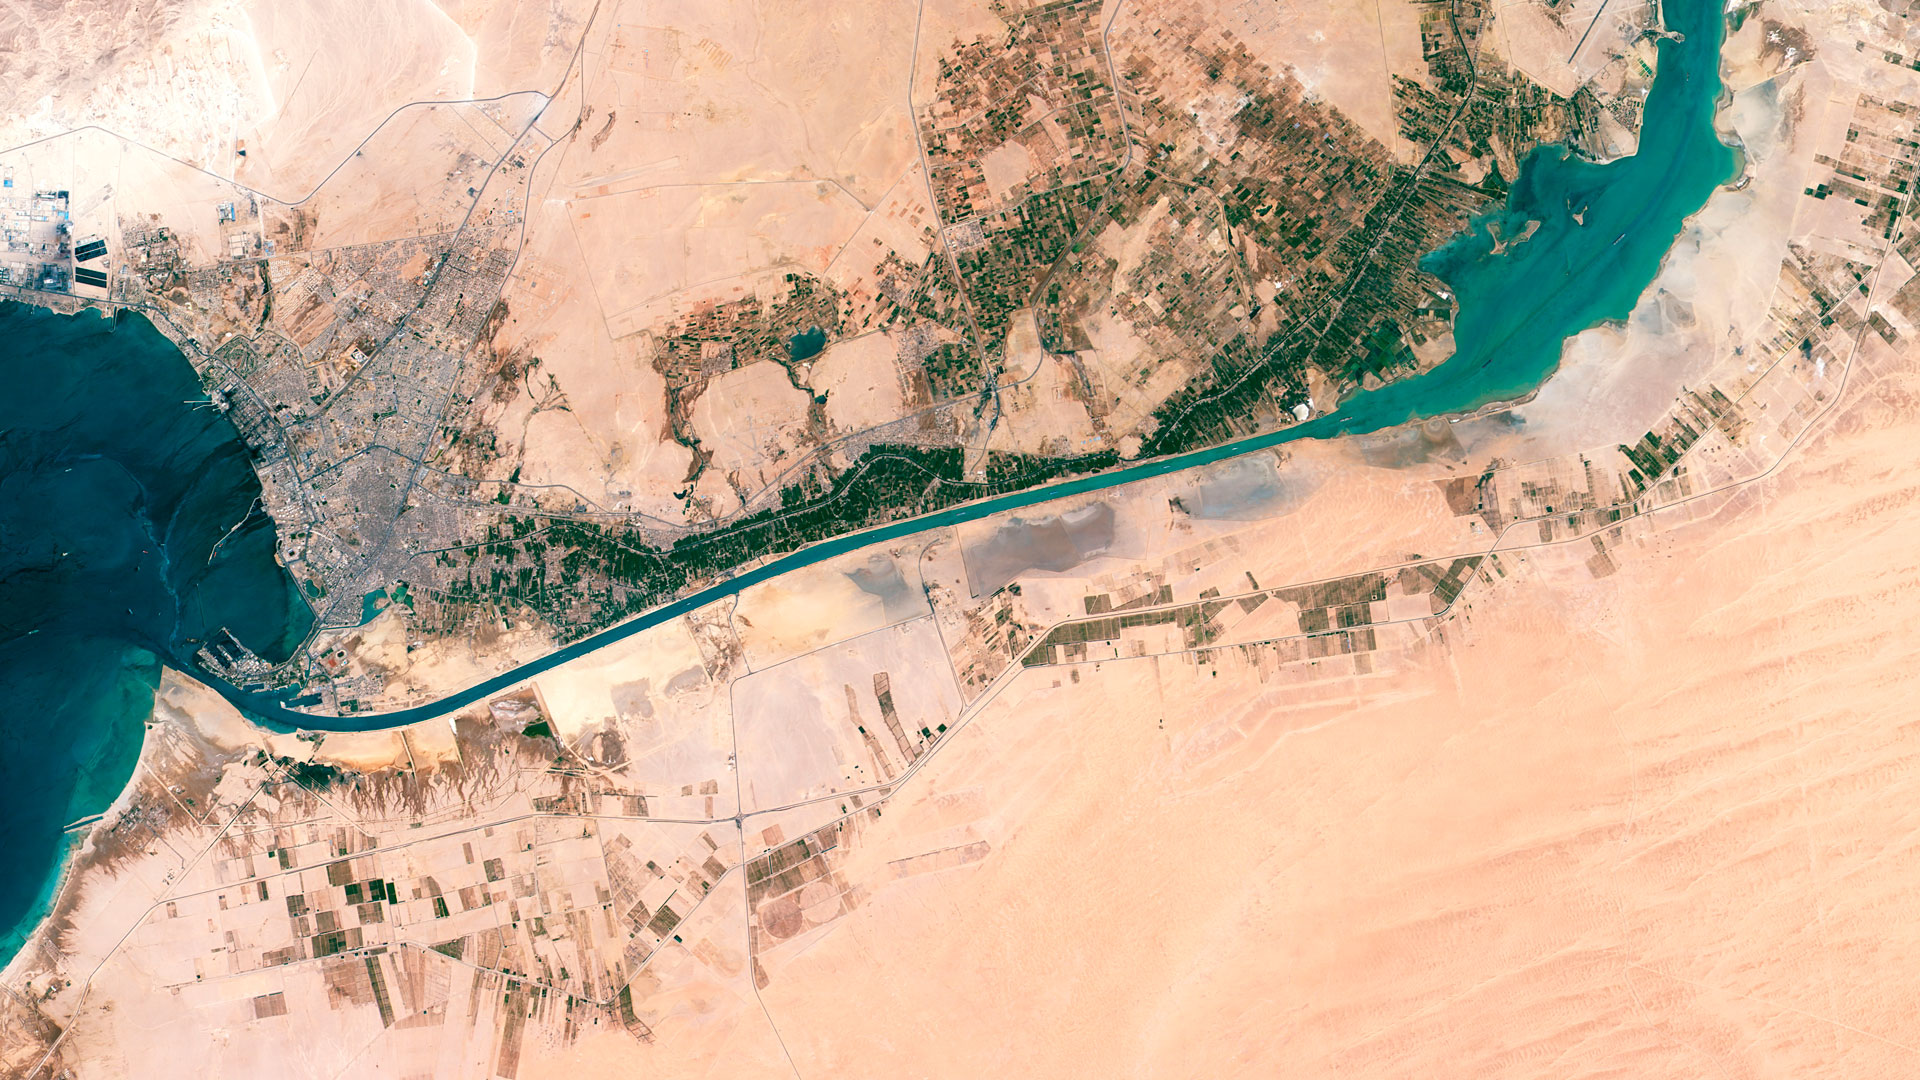 Filesuez canal egypt satellite viewg wikimedia commons filesuez canal egypt satellite viewg gumiabroncs Image collections